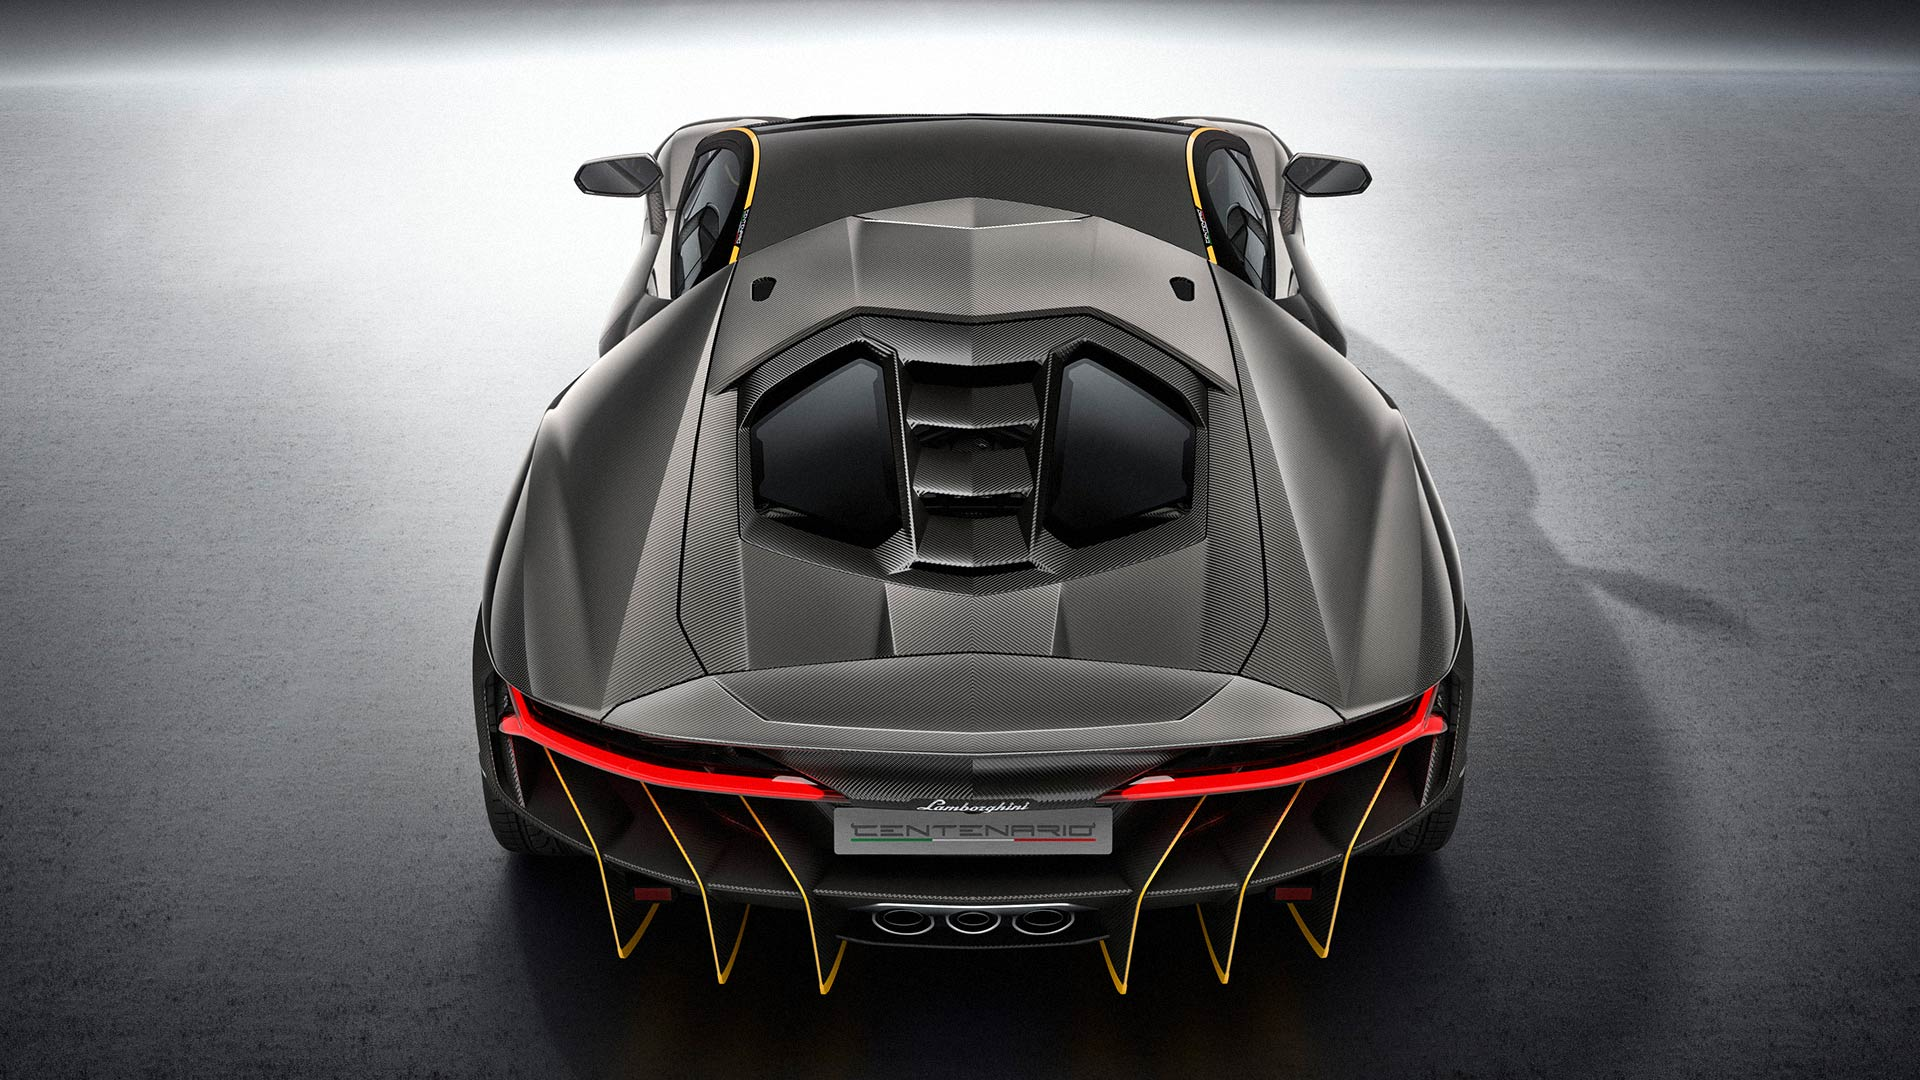 Lamborghini Centenario Hd Wallpapers X Auto